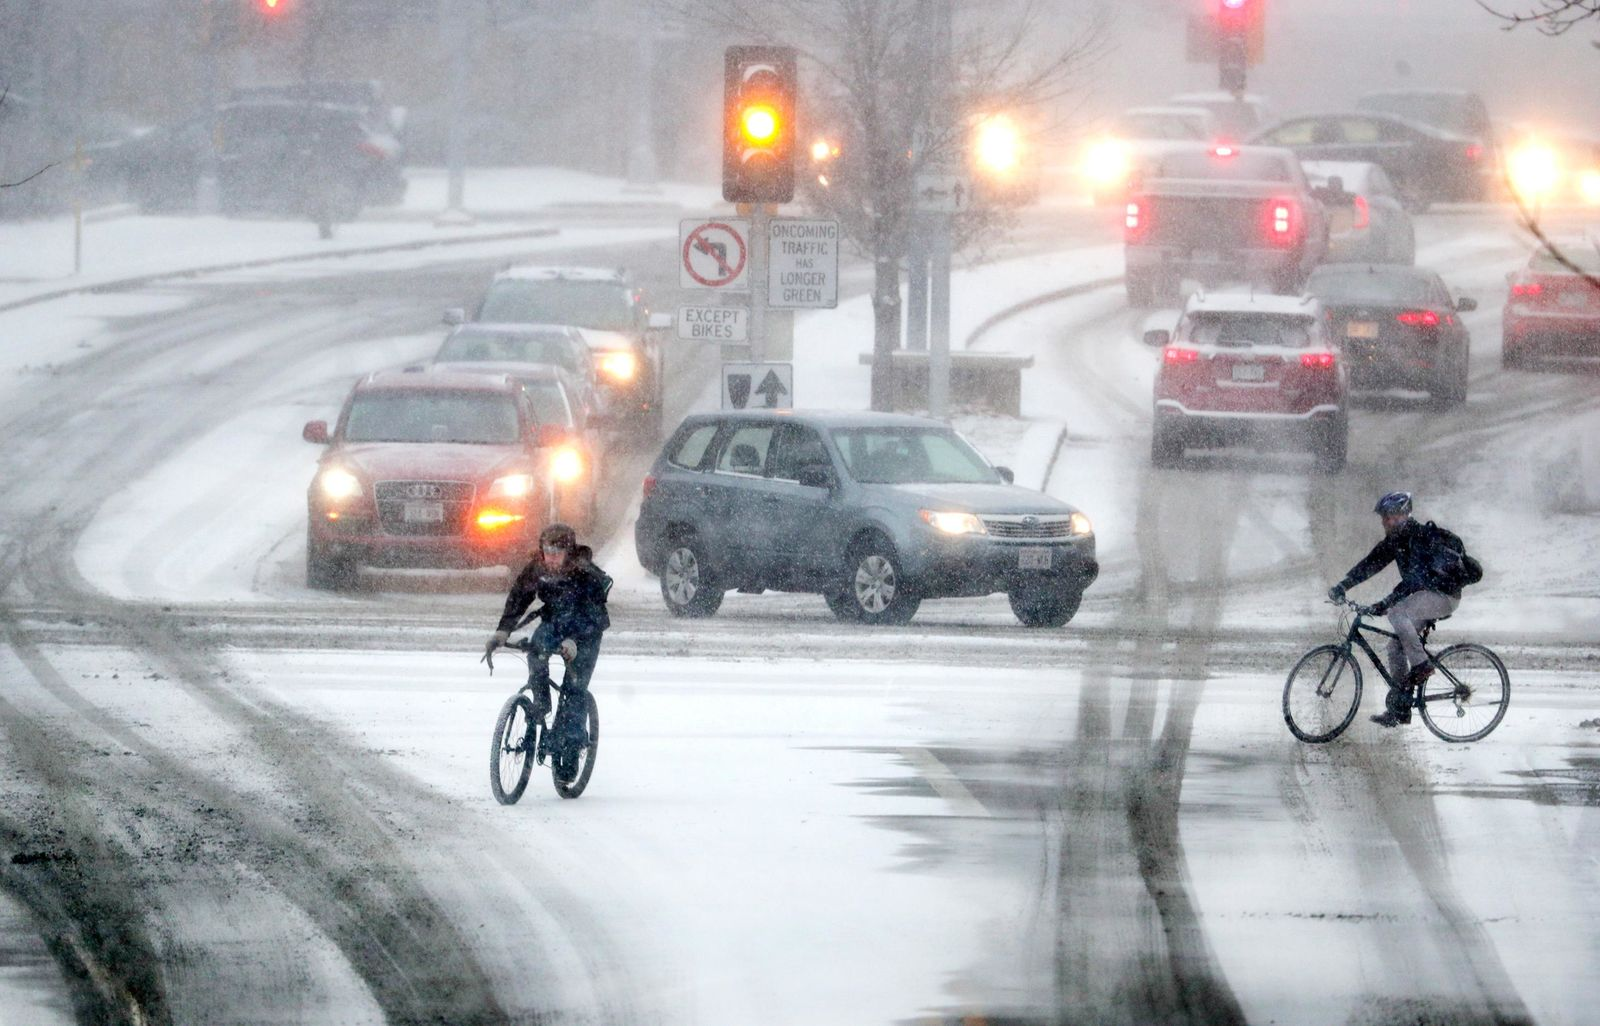 Bikers crossing Park Street at the intersection of University Ave during a late afternoon snow storm Friday, Jan. 18, 2019 in Madison, Wis. (Steve Apps/Wisconsin State Journal via AP)